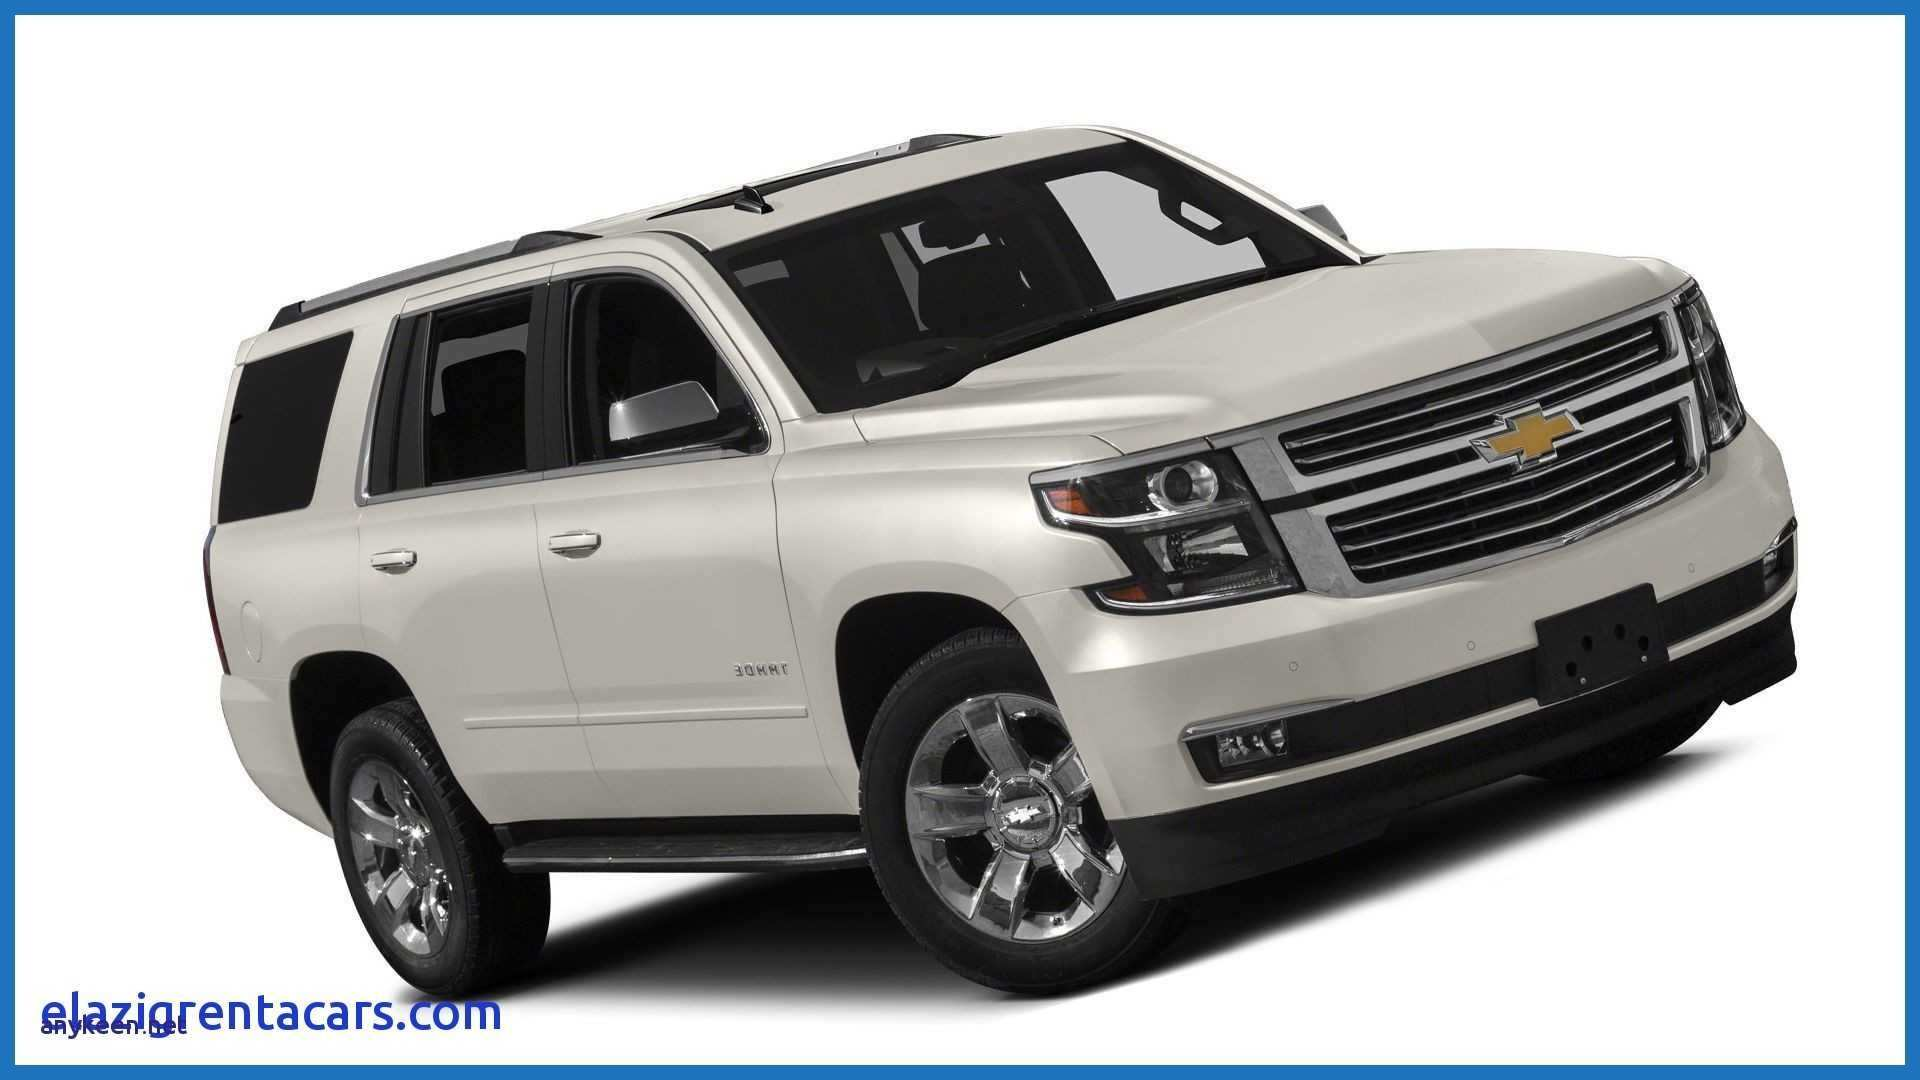 98 The Best 2020 Chevy Tahoe Z71 Ss Pictures